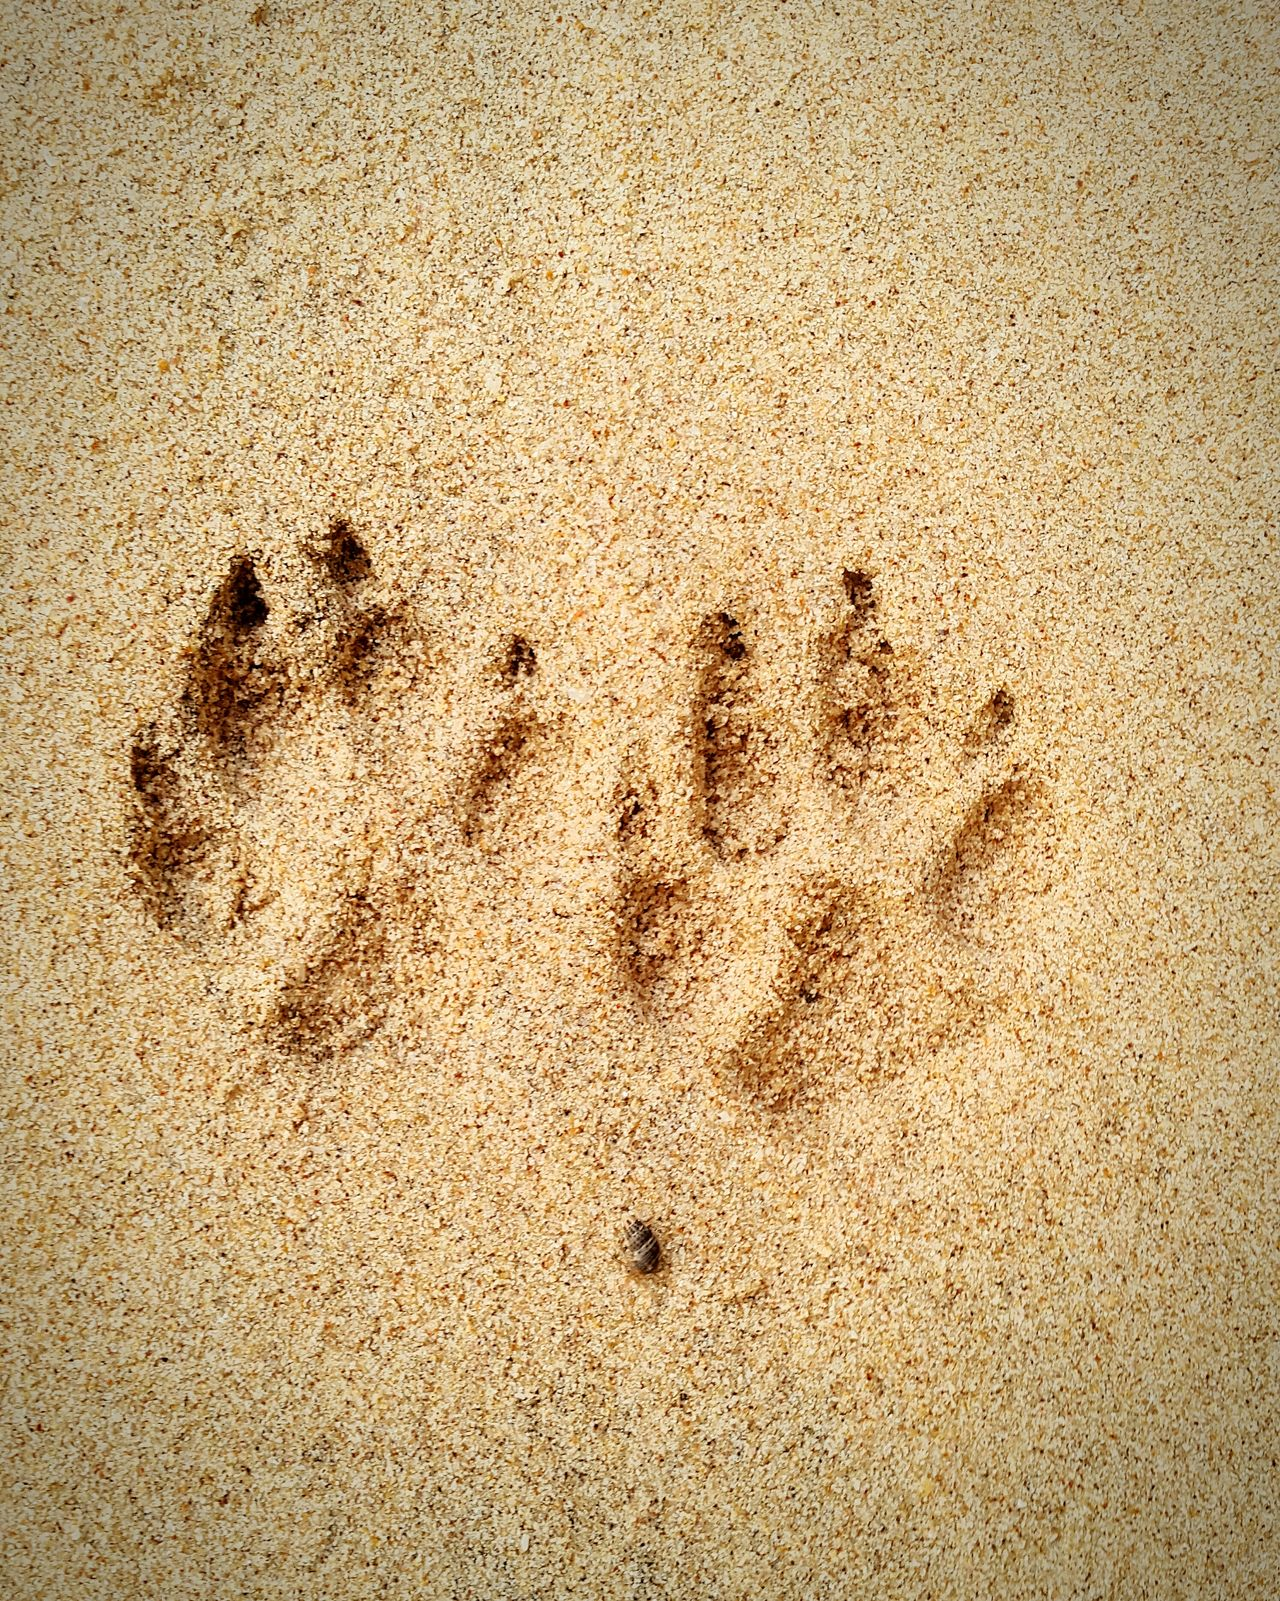 Paw Prints Animal Sand Beach